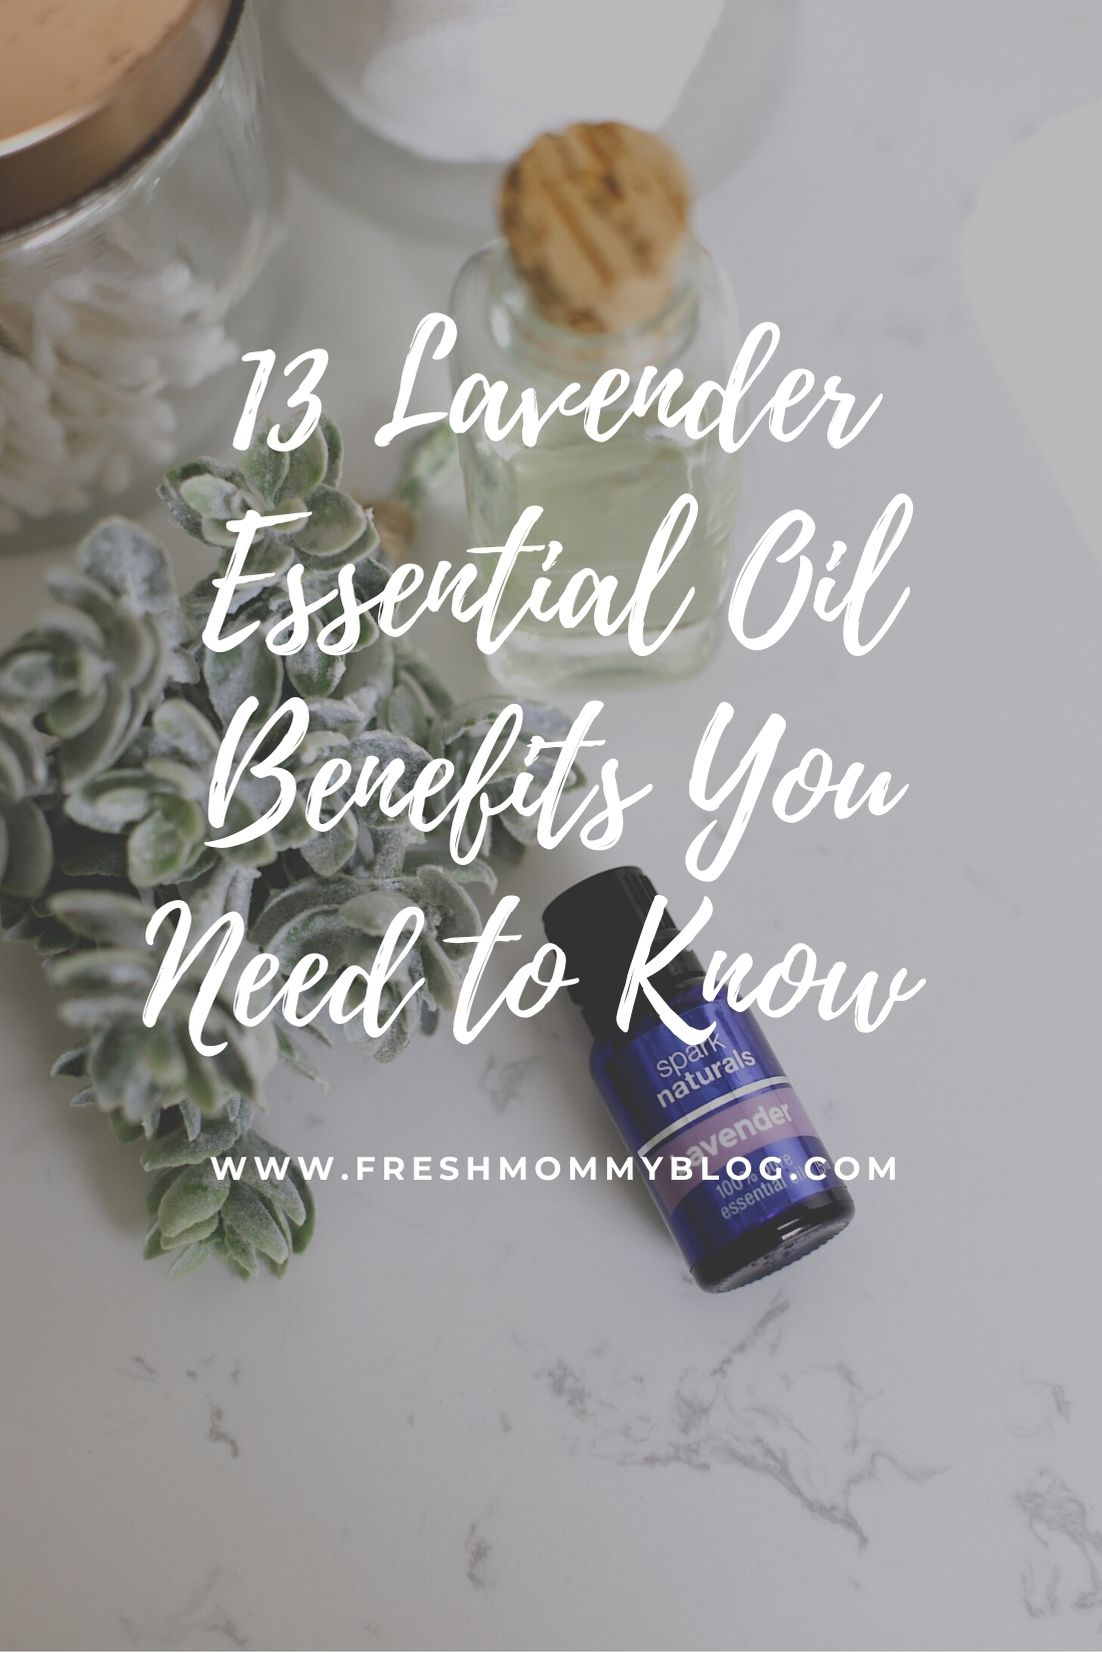 13 Spectacular Lavender Essential Oil Benefits You Need to Know About from Top US Lifestyle Blogger Tabitha Blue of Fresh Mommy Blog.   Lavender Essential Oil by popular Florida lifestyle blog, Fresh Mommy Blog: Pinterest image of Spark Naturals lavender essential oil.